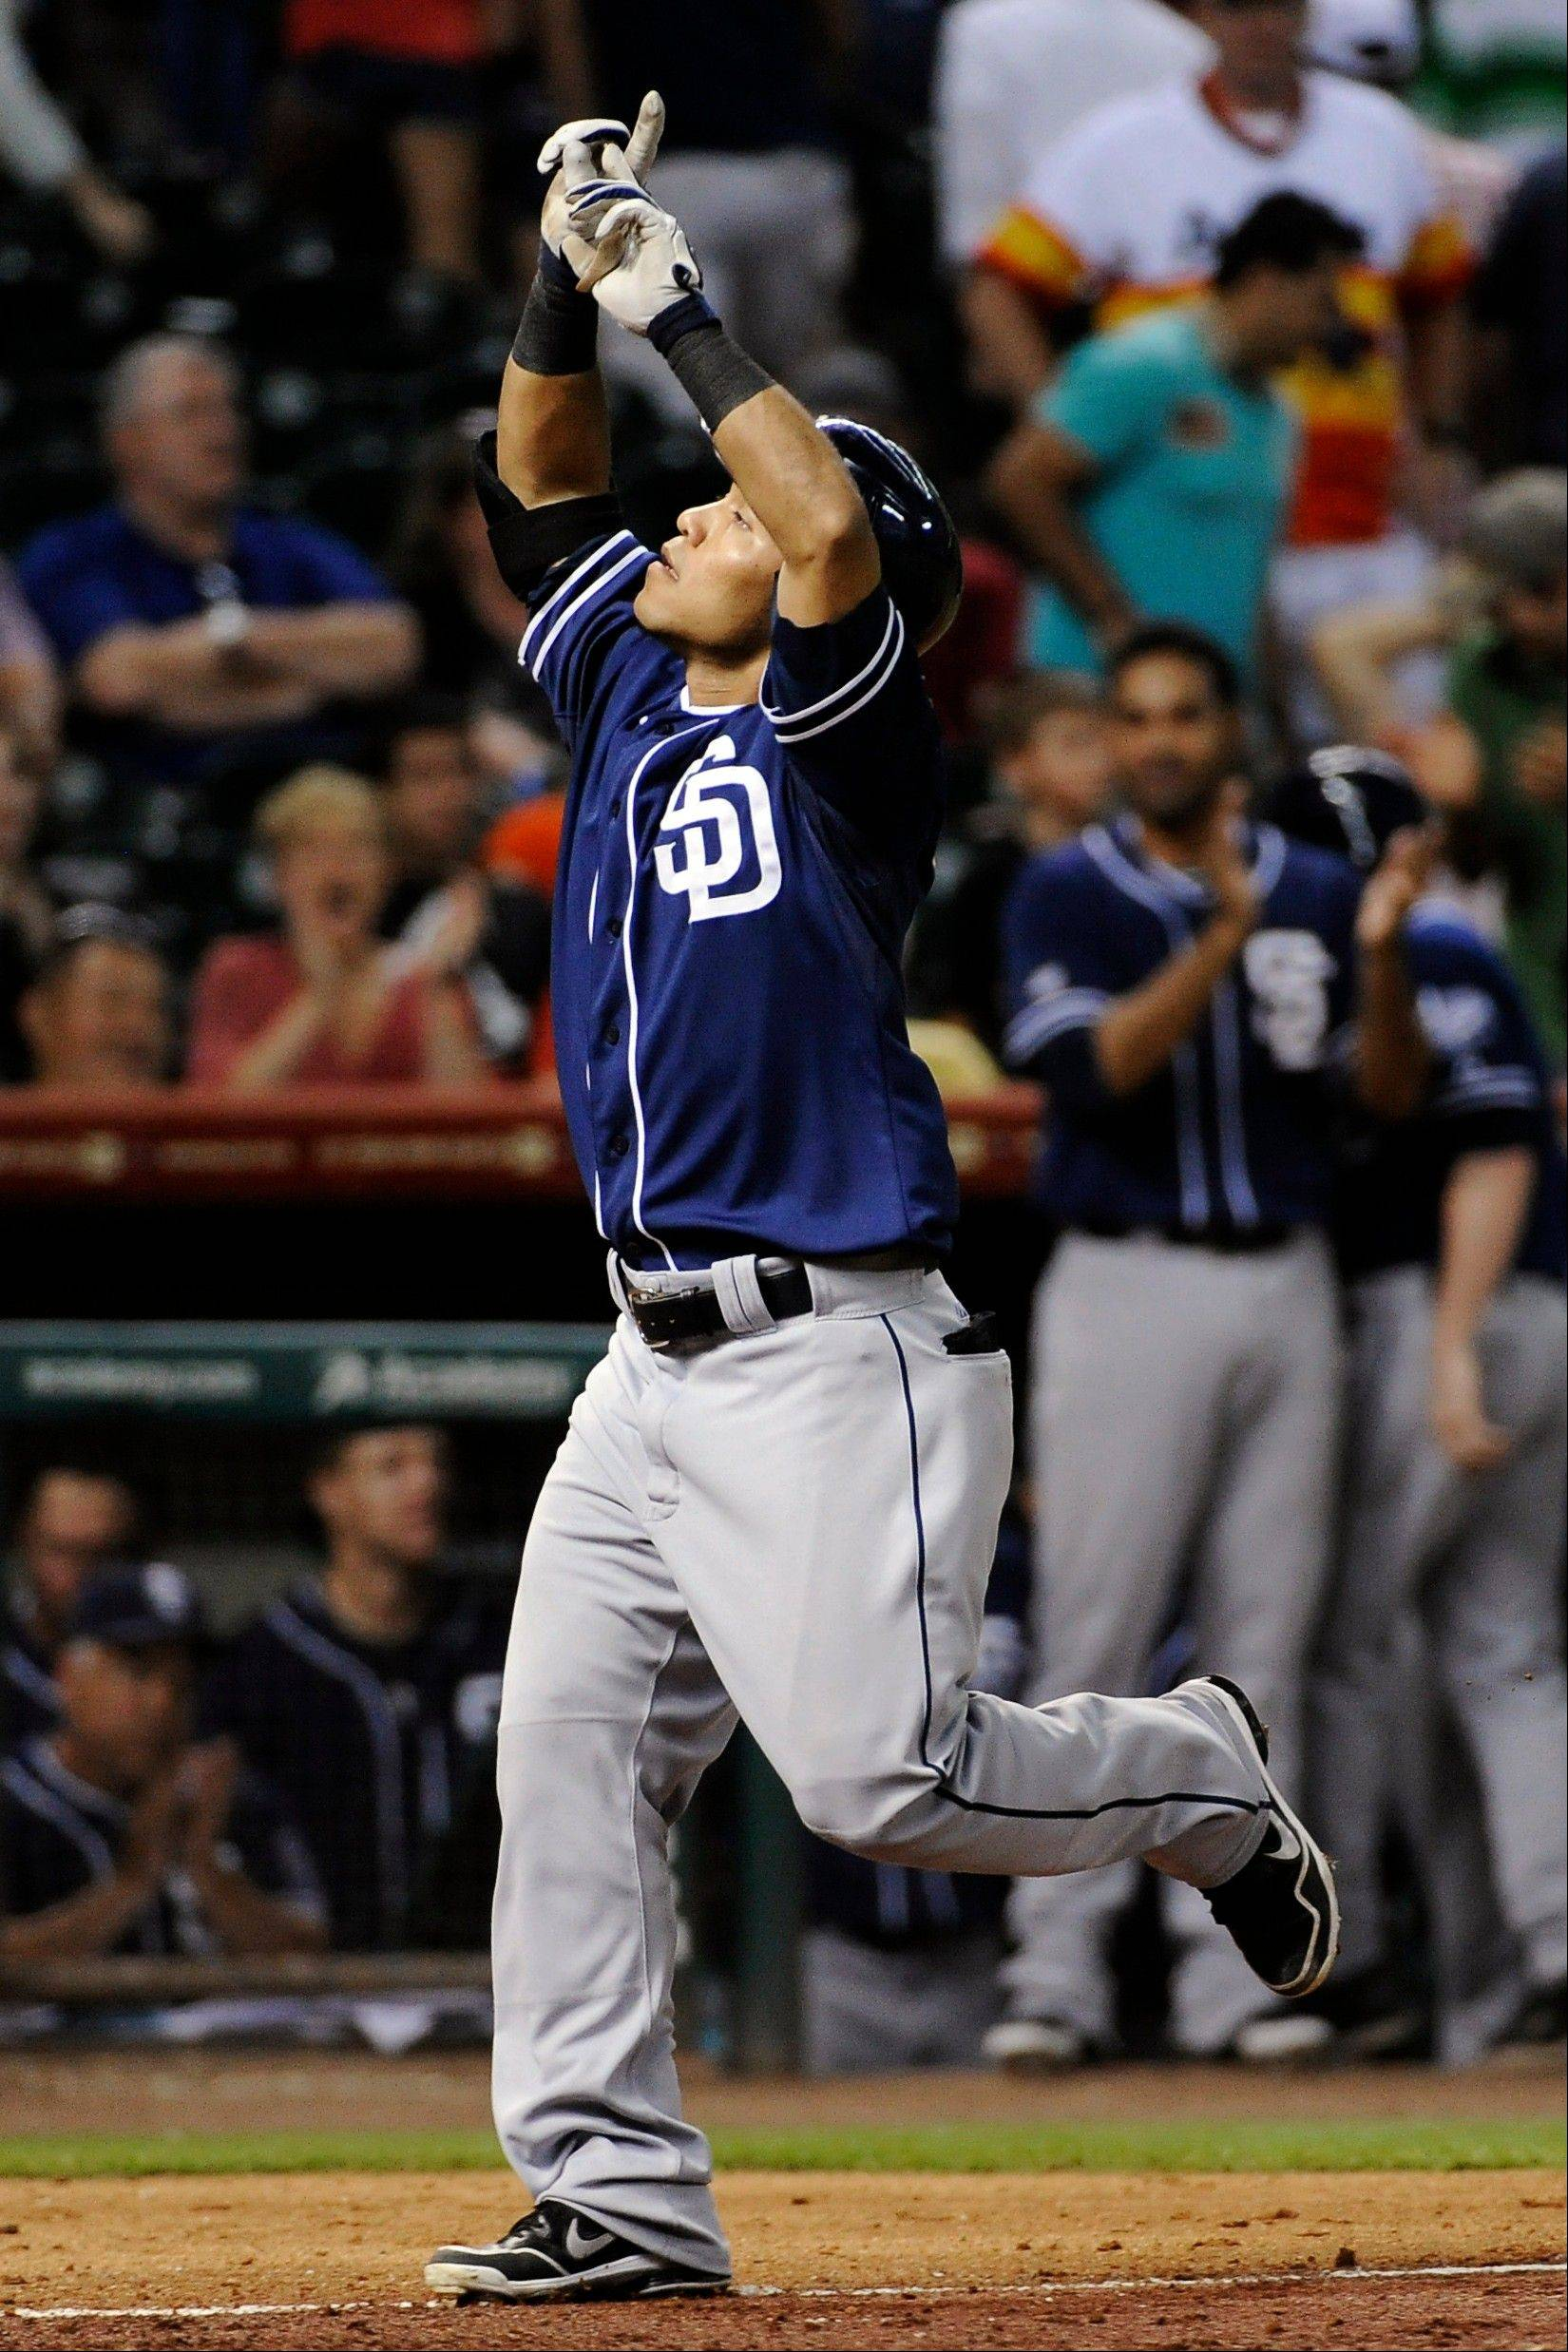 San Diego's Alexi Amarista runs to home plate after hitting a grand slam in the ninth inning Thursday in Houston.